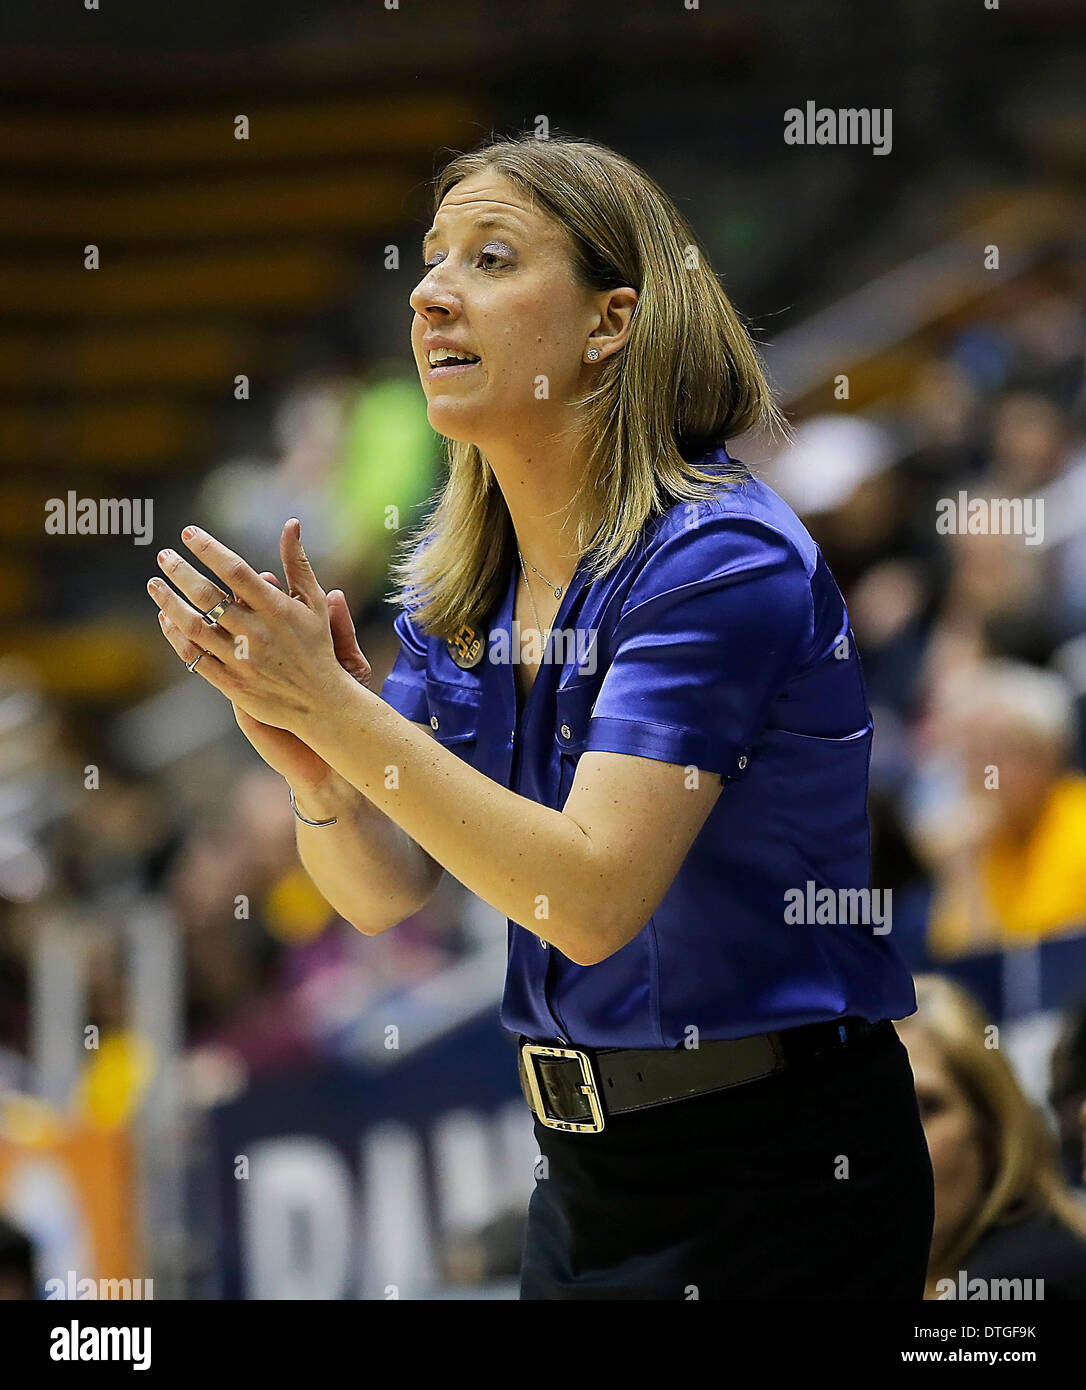 Berkeley, CA, USA. 16th Feb, 2014. Feb 16 2014 - Berkeley CA USA California Bears Head Coach Lindsay Gottlieb during Stock Photo